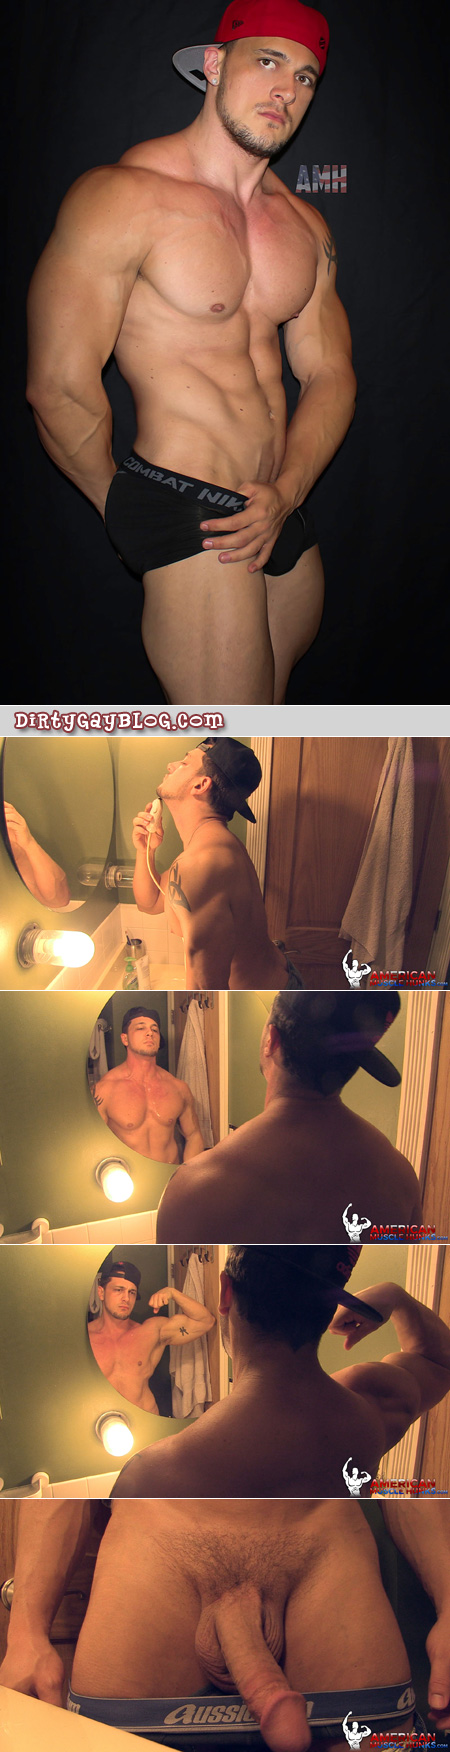 Muscular straight guy shaving and pulling out his big dick.